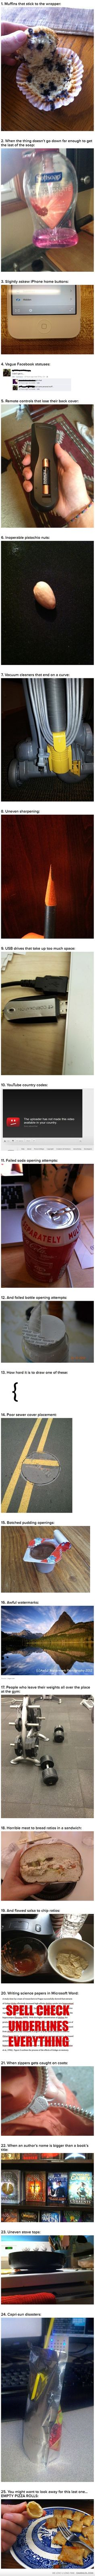 some of the most annoying things ever...So true!